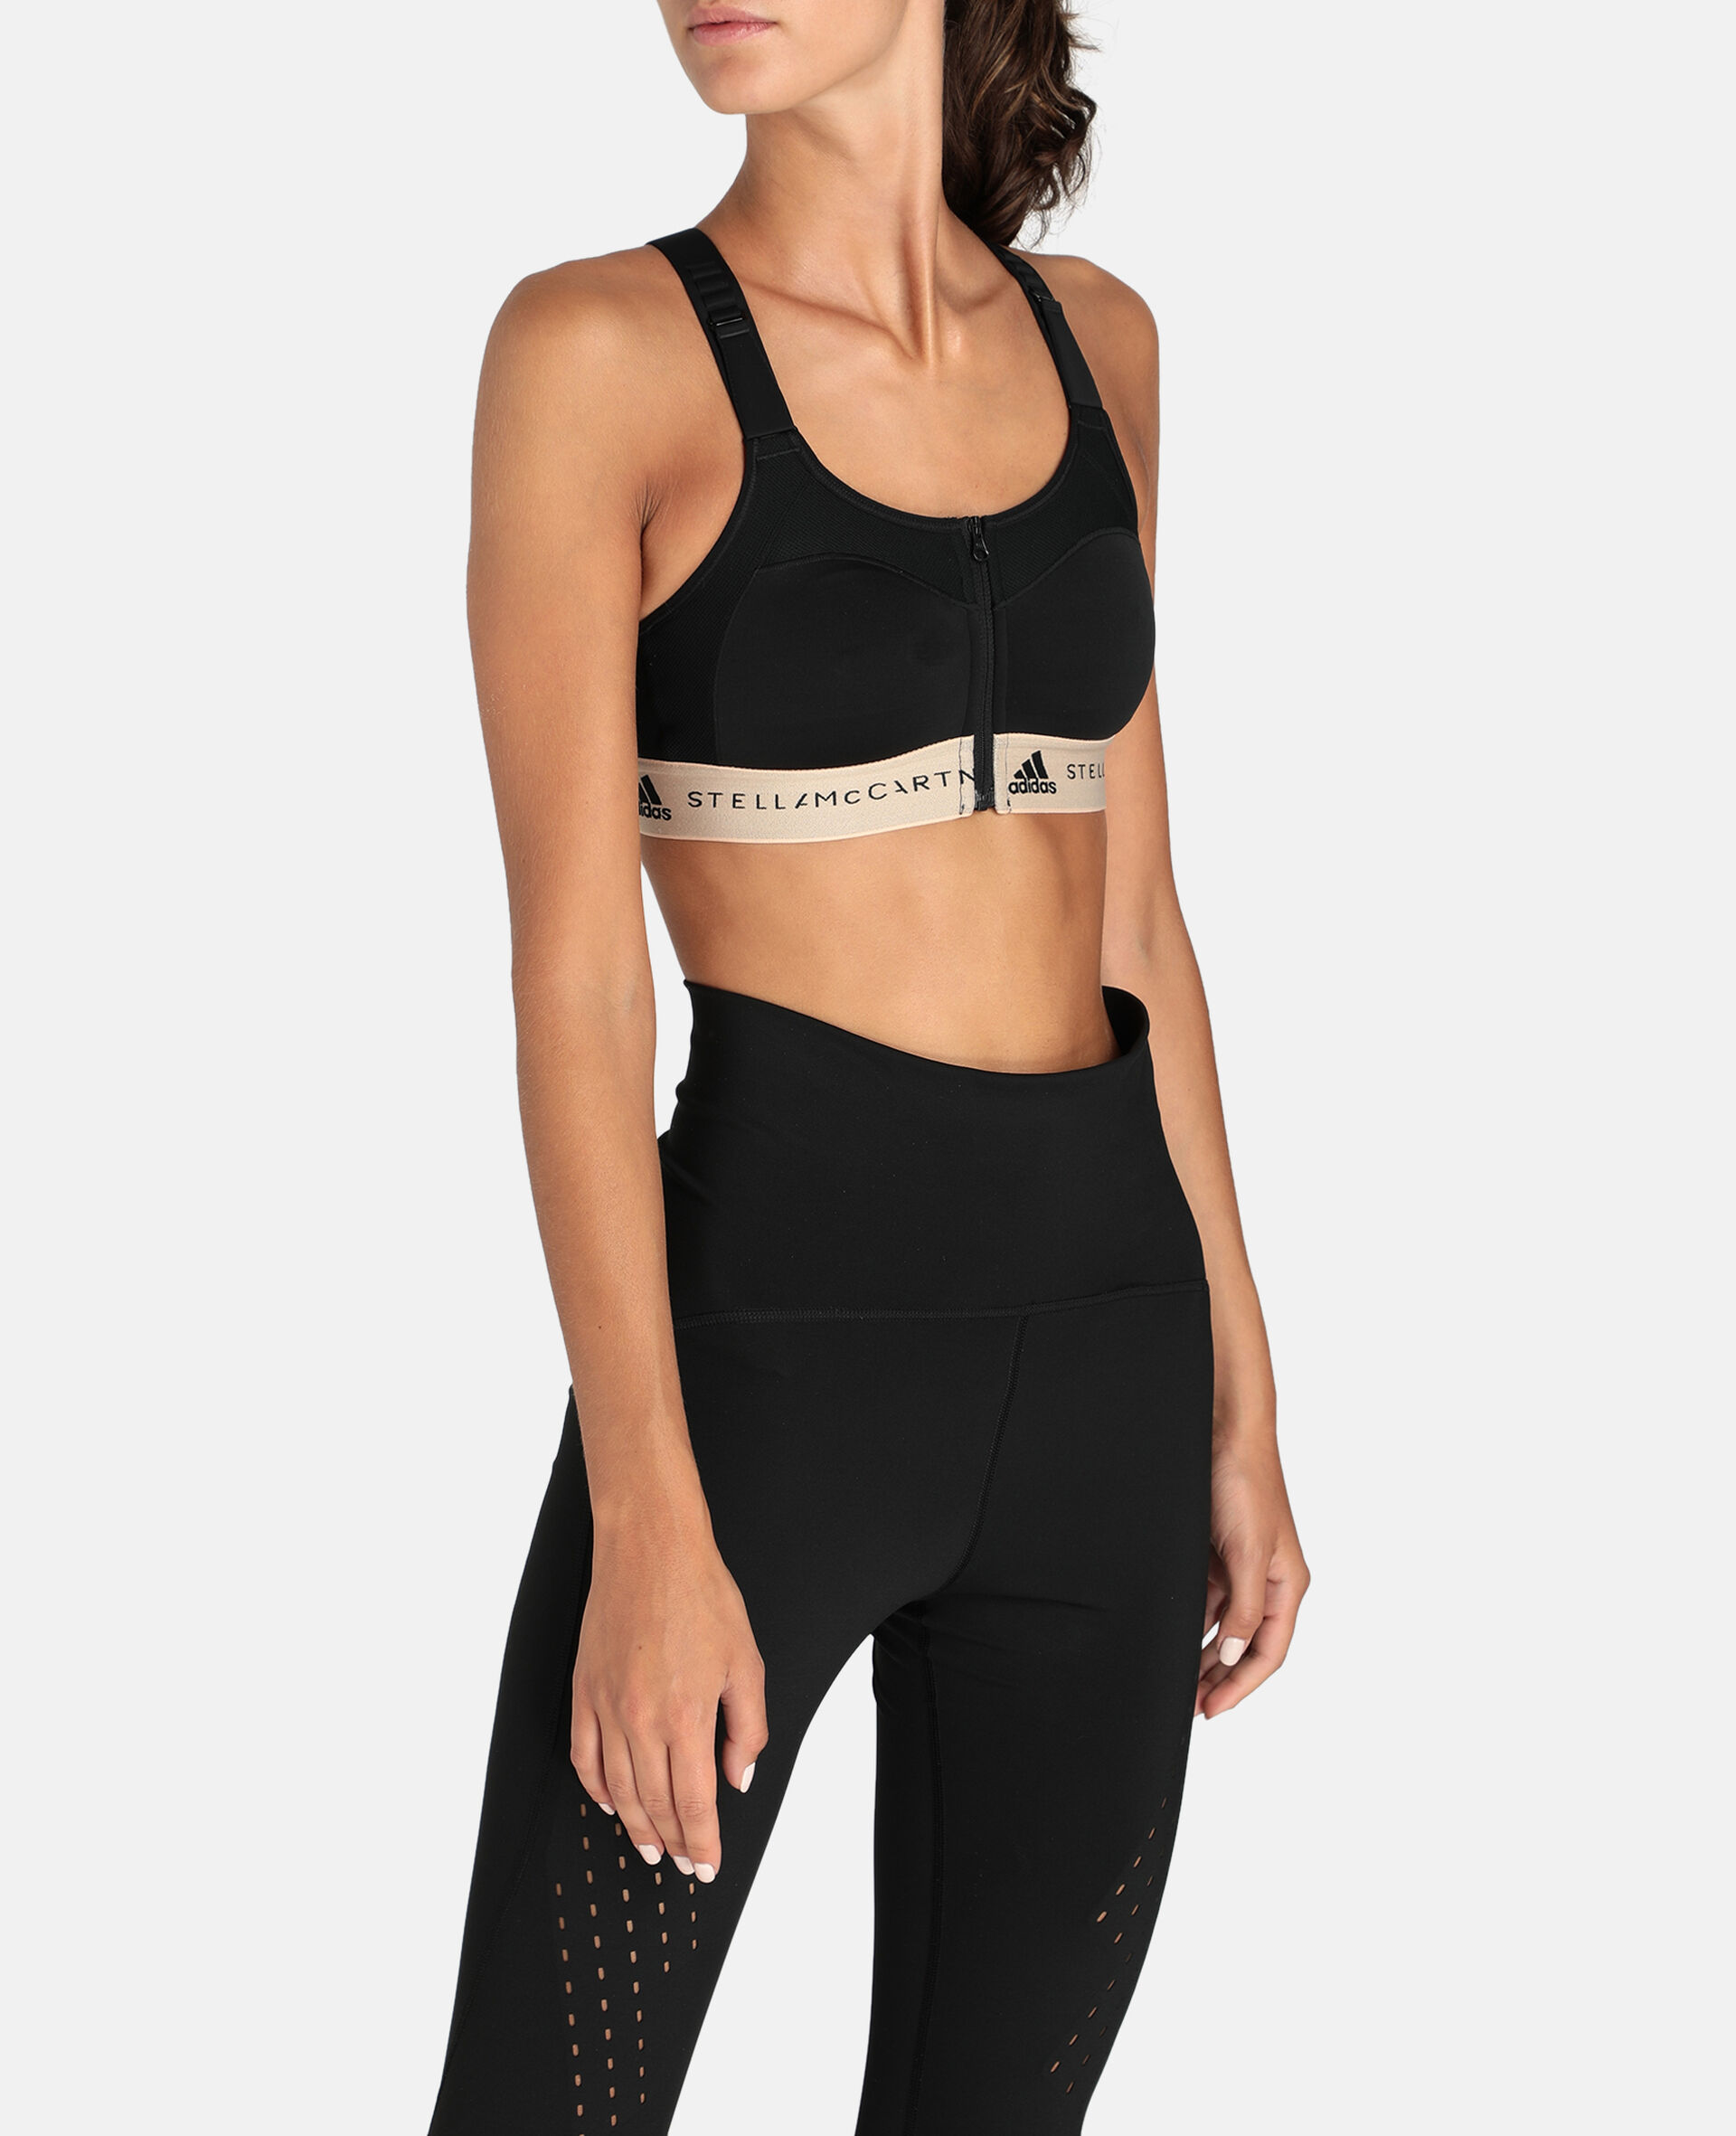 TruePurpose Post-Mastectomy Sports Bra -Black-large image number 4